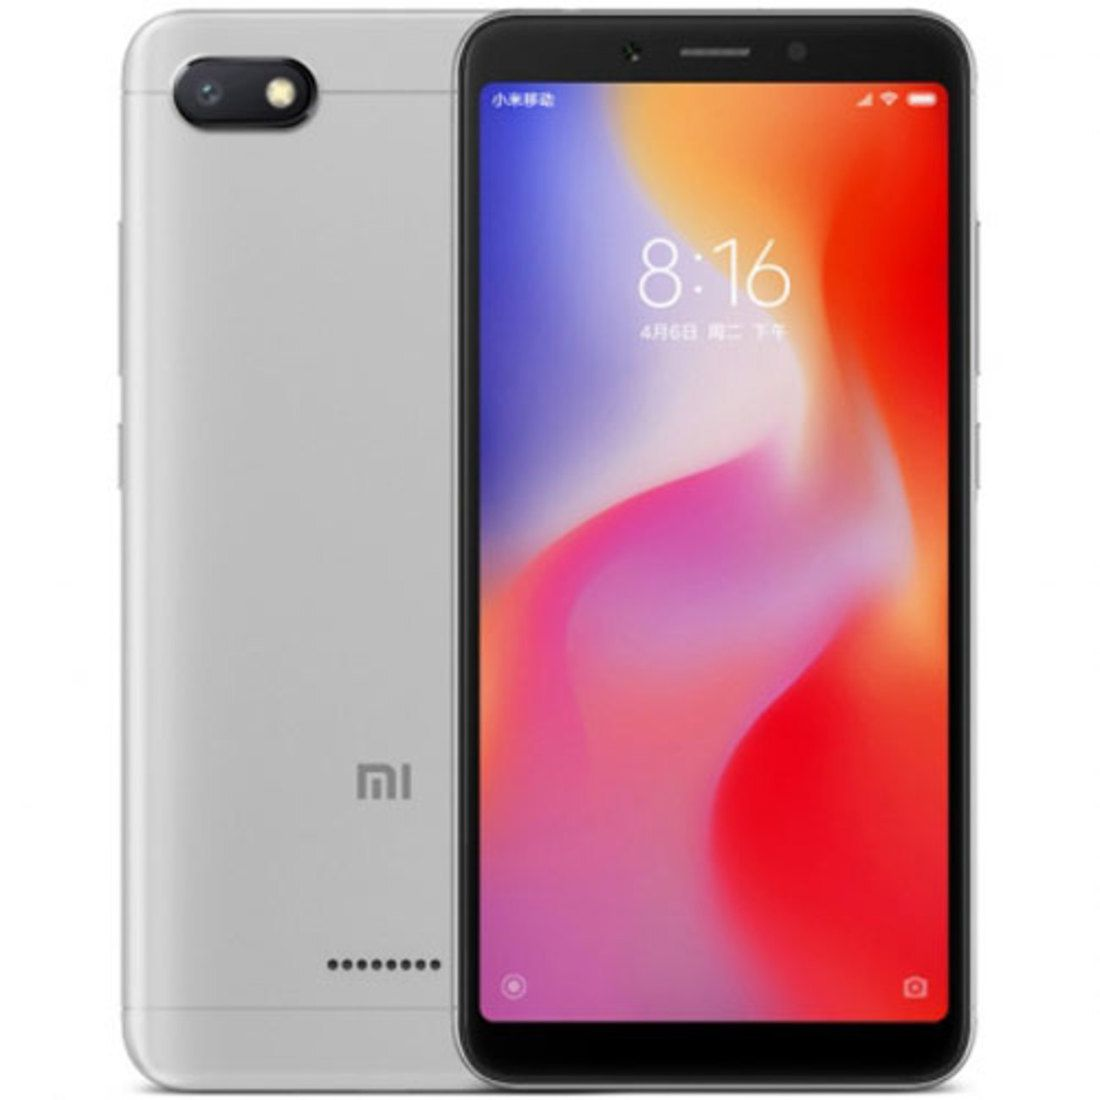 Smartphone Redmi 6A 2GB Ram Tela 5.45 32GB Camera 13MP - Prata